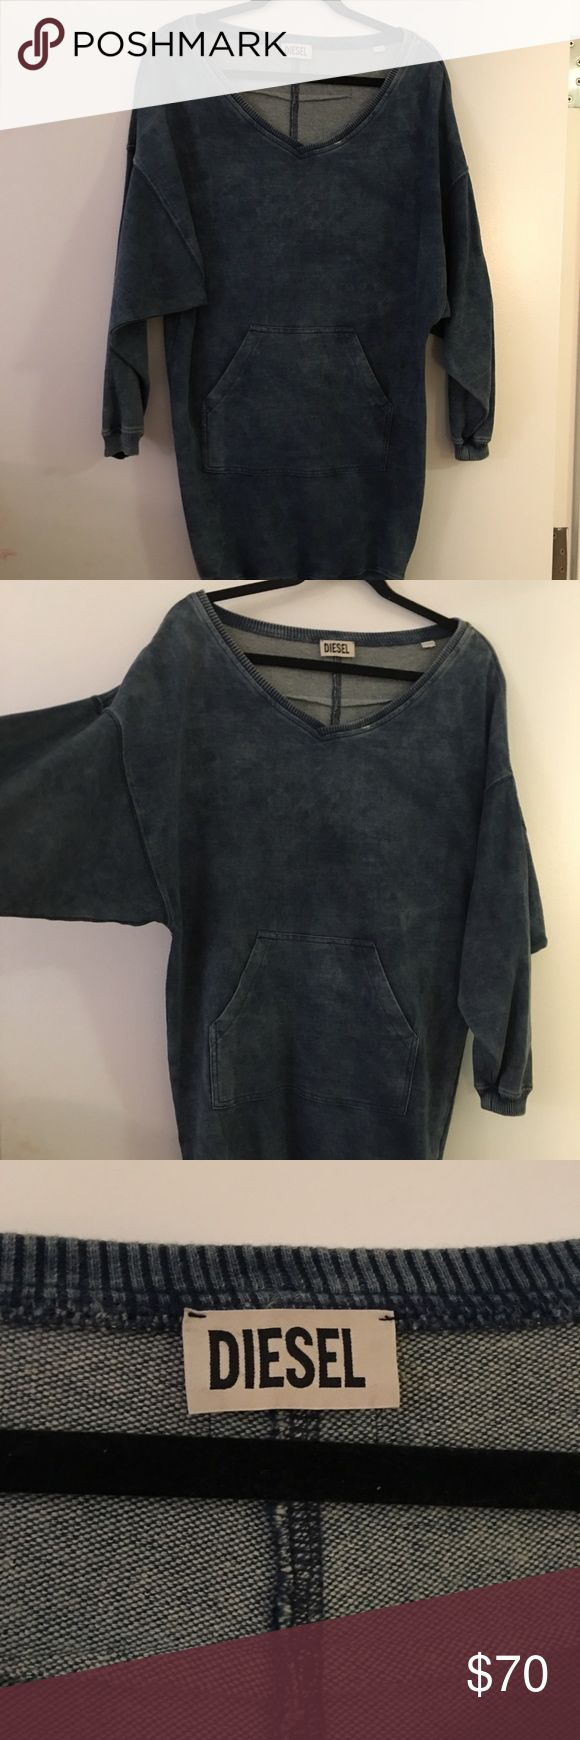 Diesel dress Slouchy and super comfortable, can be worn off the shoulder. Worn once. Fits a size Small or medium Diesel Dresses